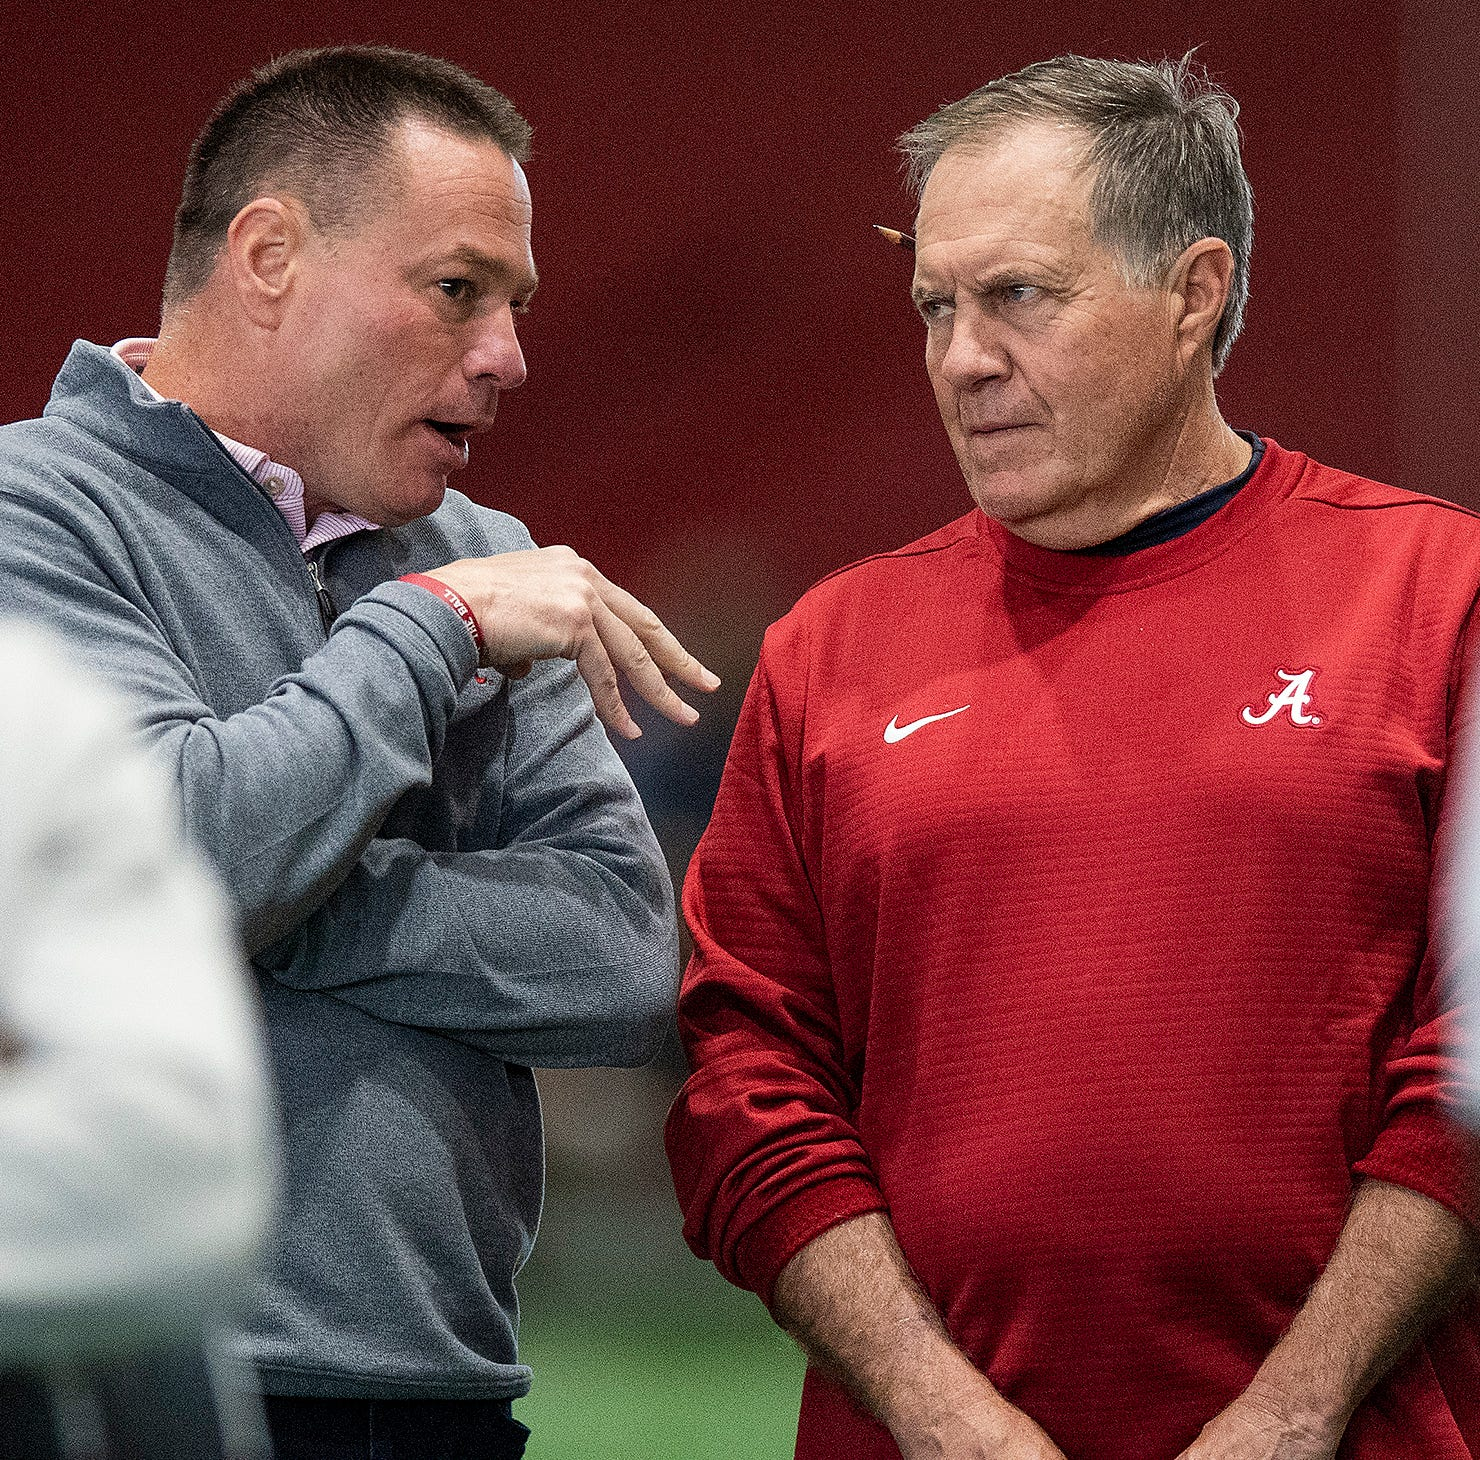 Butch Jones chats up Bill Belichick, Nick Saban in meeting of the minds at Alabama pro day